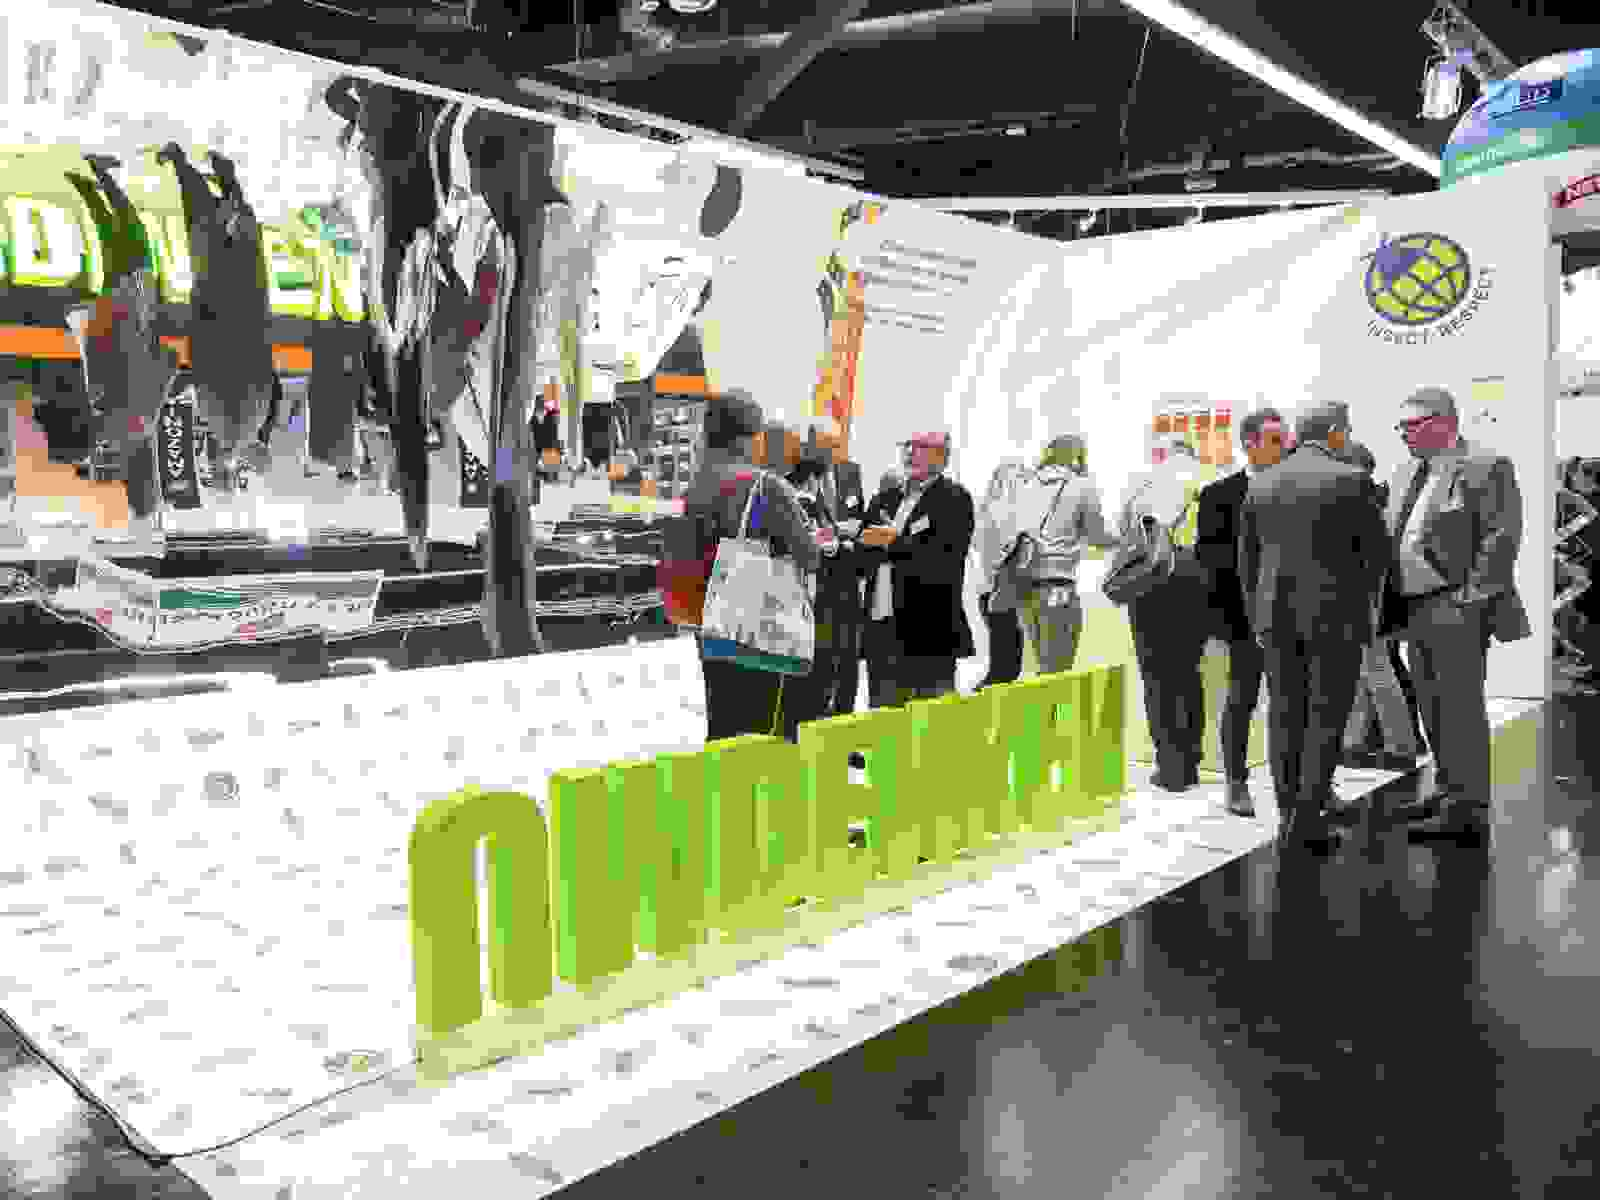 Messestand BioFach 2019 von Insect Respect